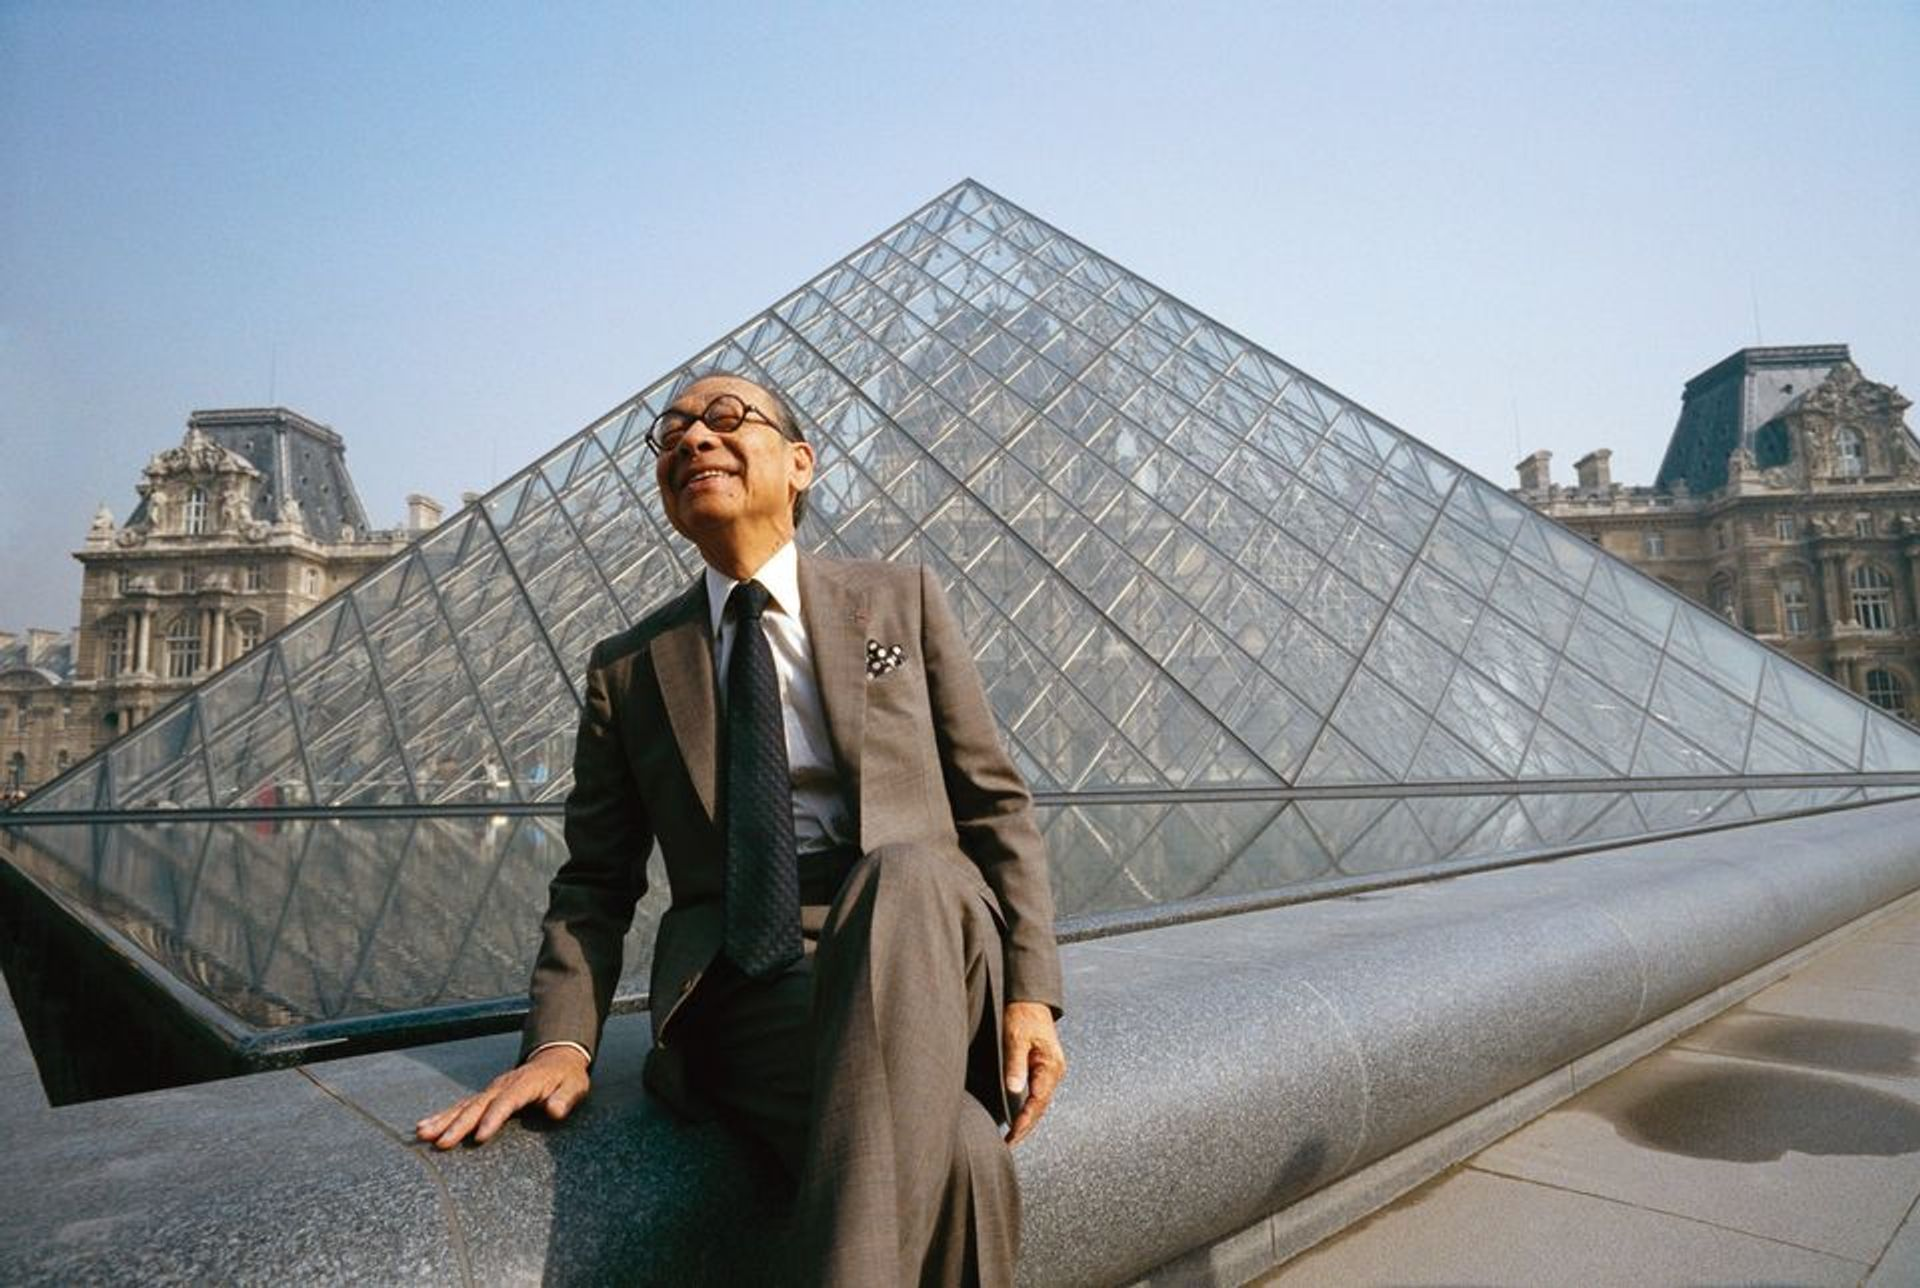 Despite early condemnation by critics, the Louvre's monumental glass pyramid, designed by the Chinese-American architect I.M. Pei (above), is credited with helping to boost visitor numbers from 3.5 million in 1989 to more than 10 million last year © Bernard Bisson/Sygma/Getty Images